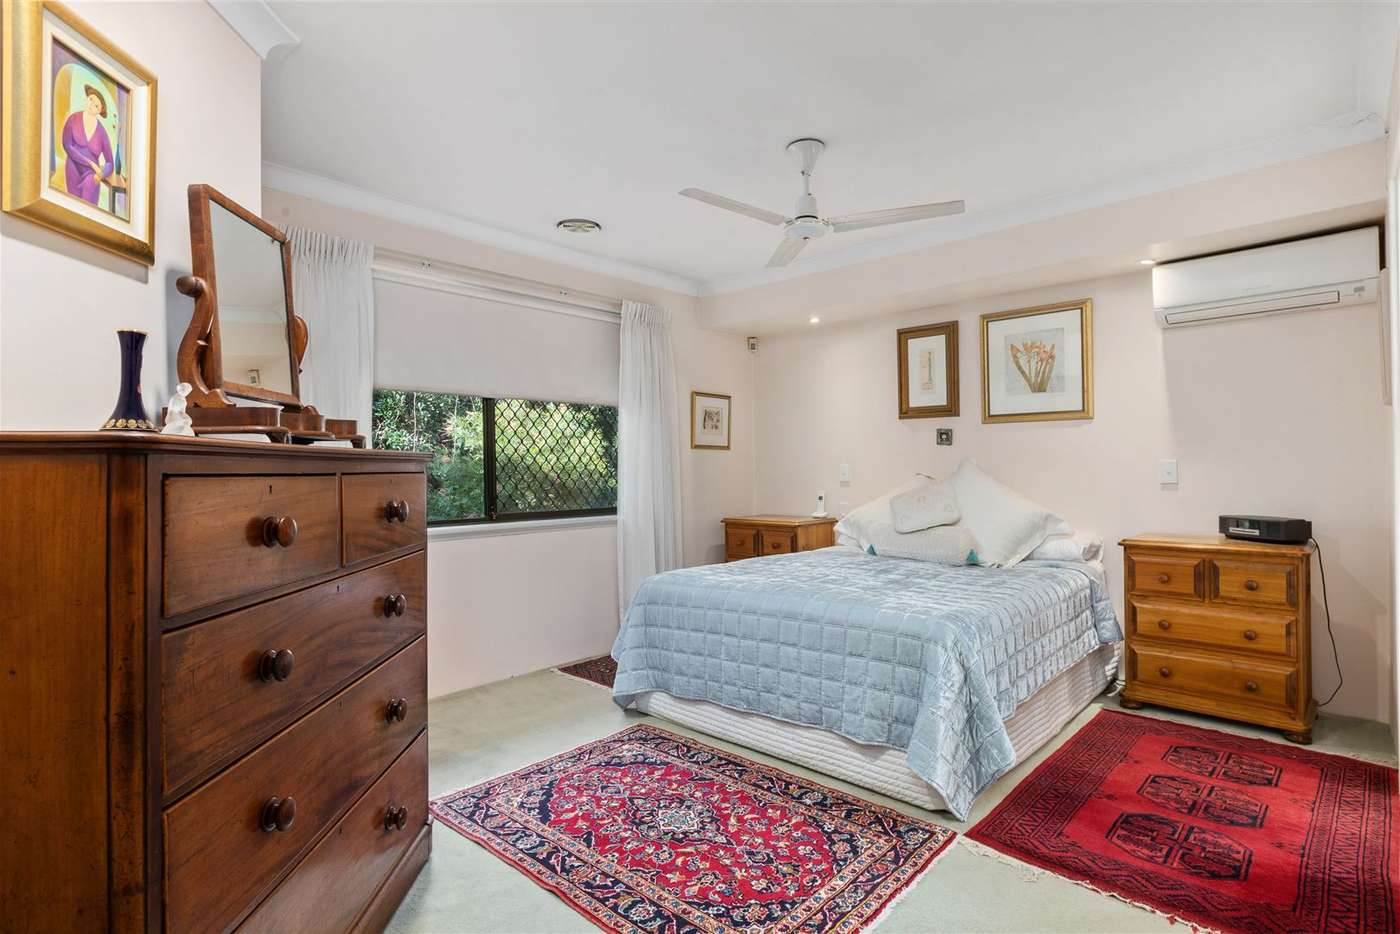 Sixth view of Homely house listing, 16 Munro Road, Applecross WA 6153